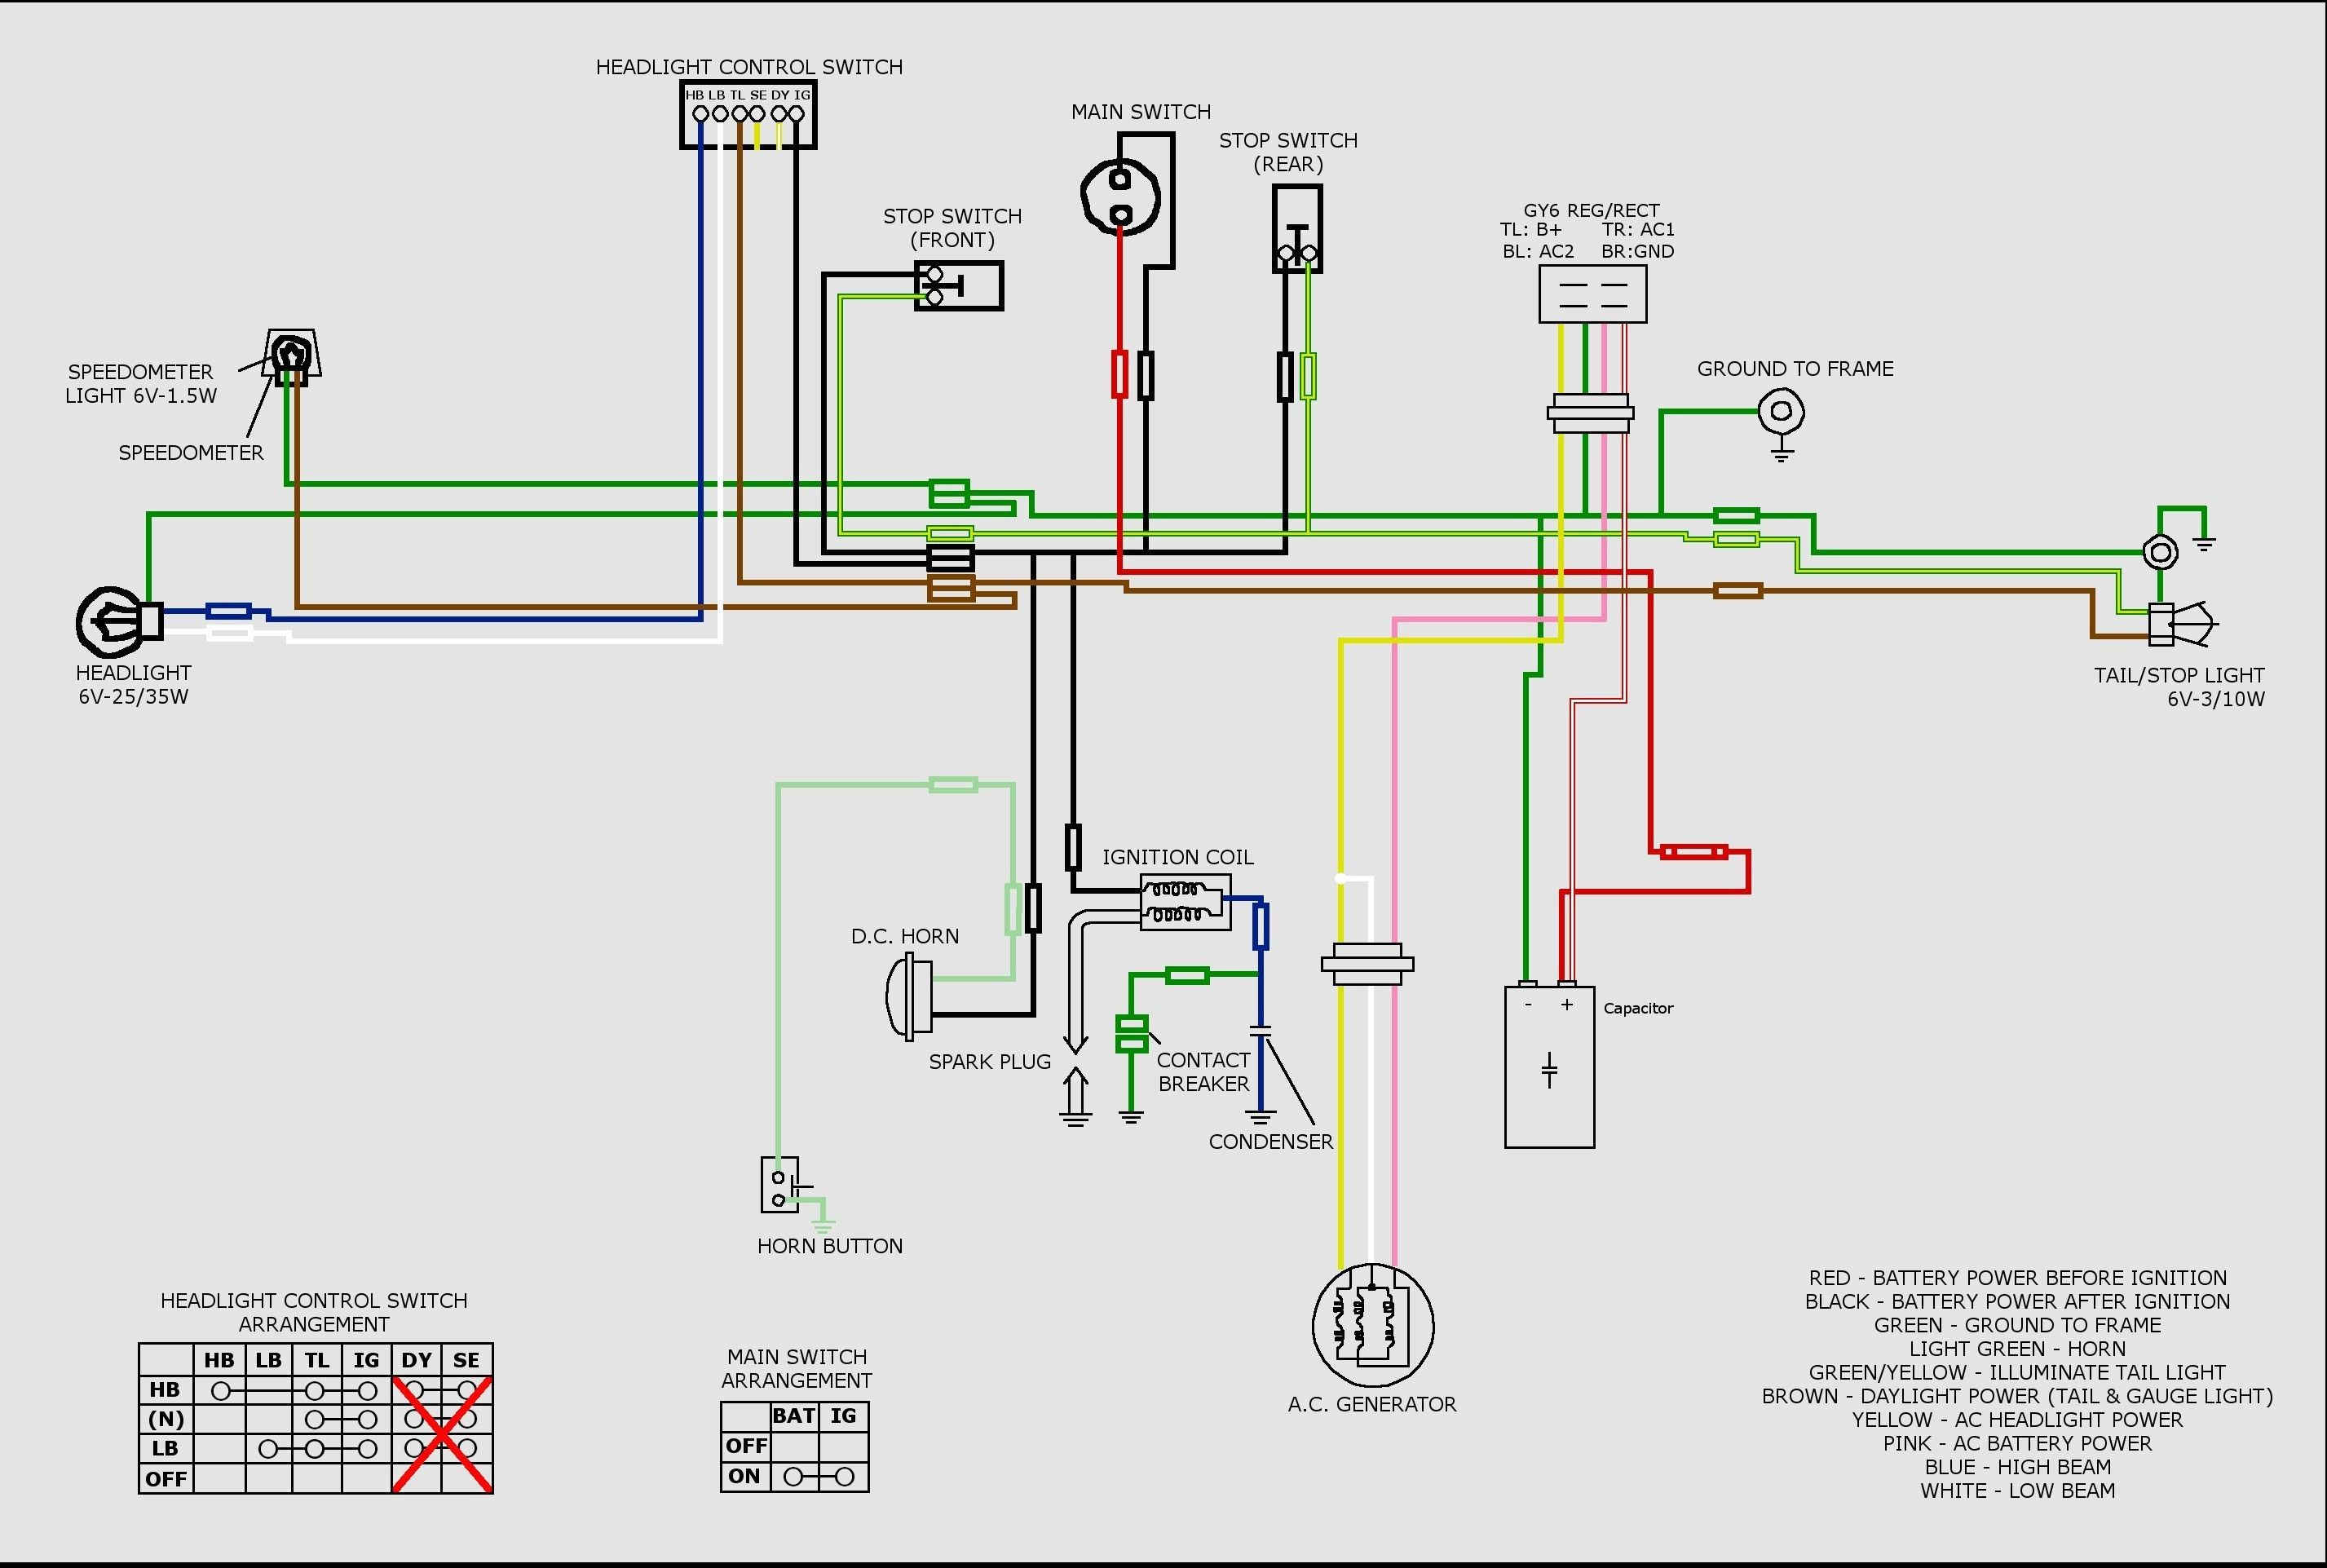 DIAGRAM] Pioneer Deh P6100bt Wiring Diagram FULL Version HD Quality Wiring  Diagram - 1110VWIRING1.ARBREDESVOIX.FRarbredesvoix.fr